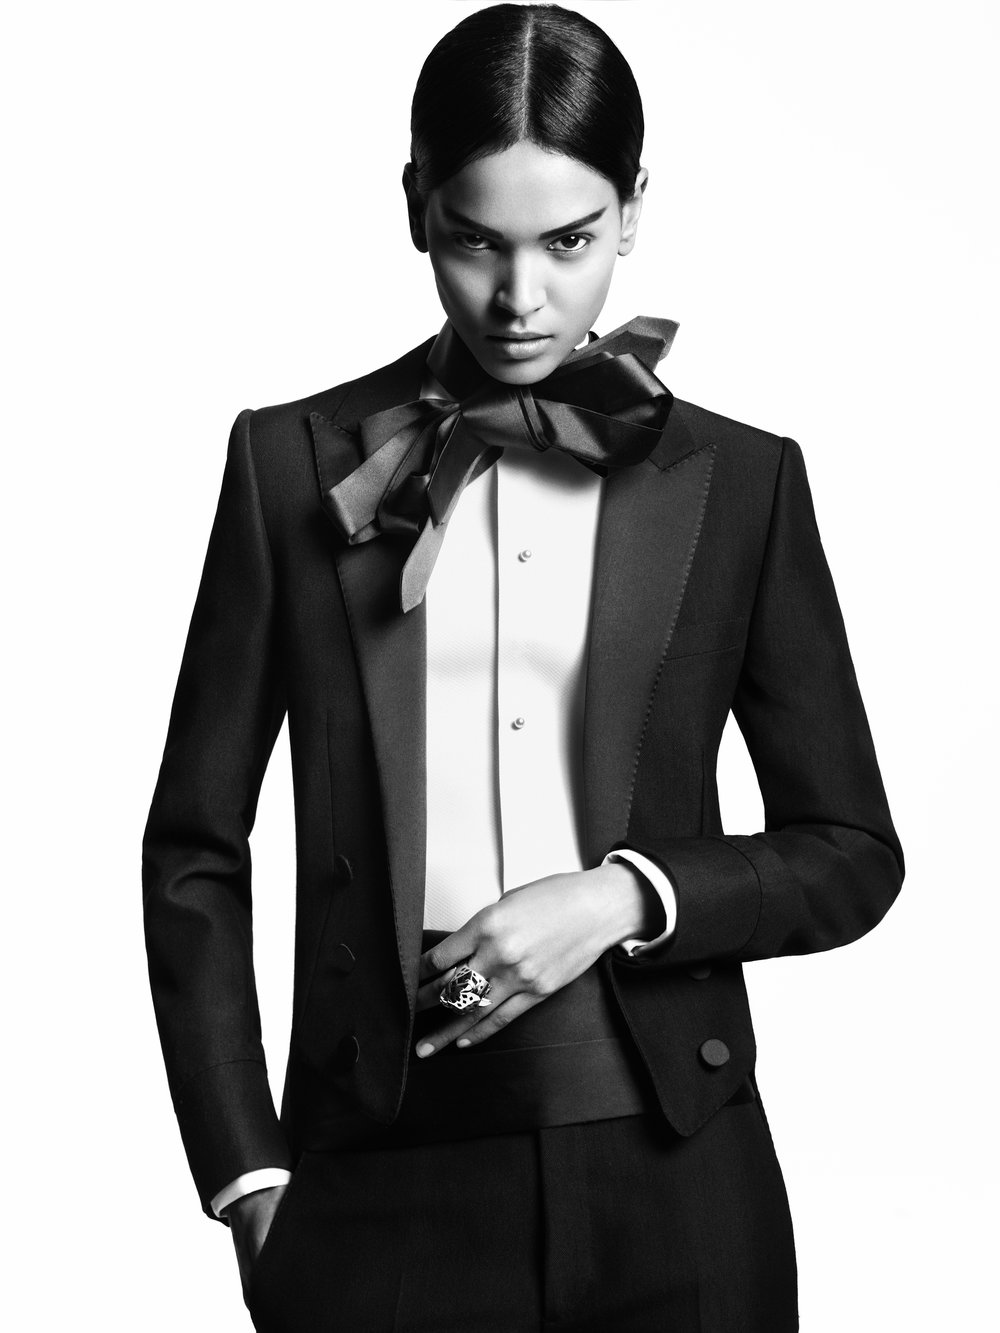 Giovanna-Battaglia-4-Black-and-White-Etiquette-L'uomo-Vogue-Greg-Kadel.jpg